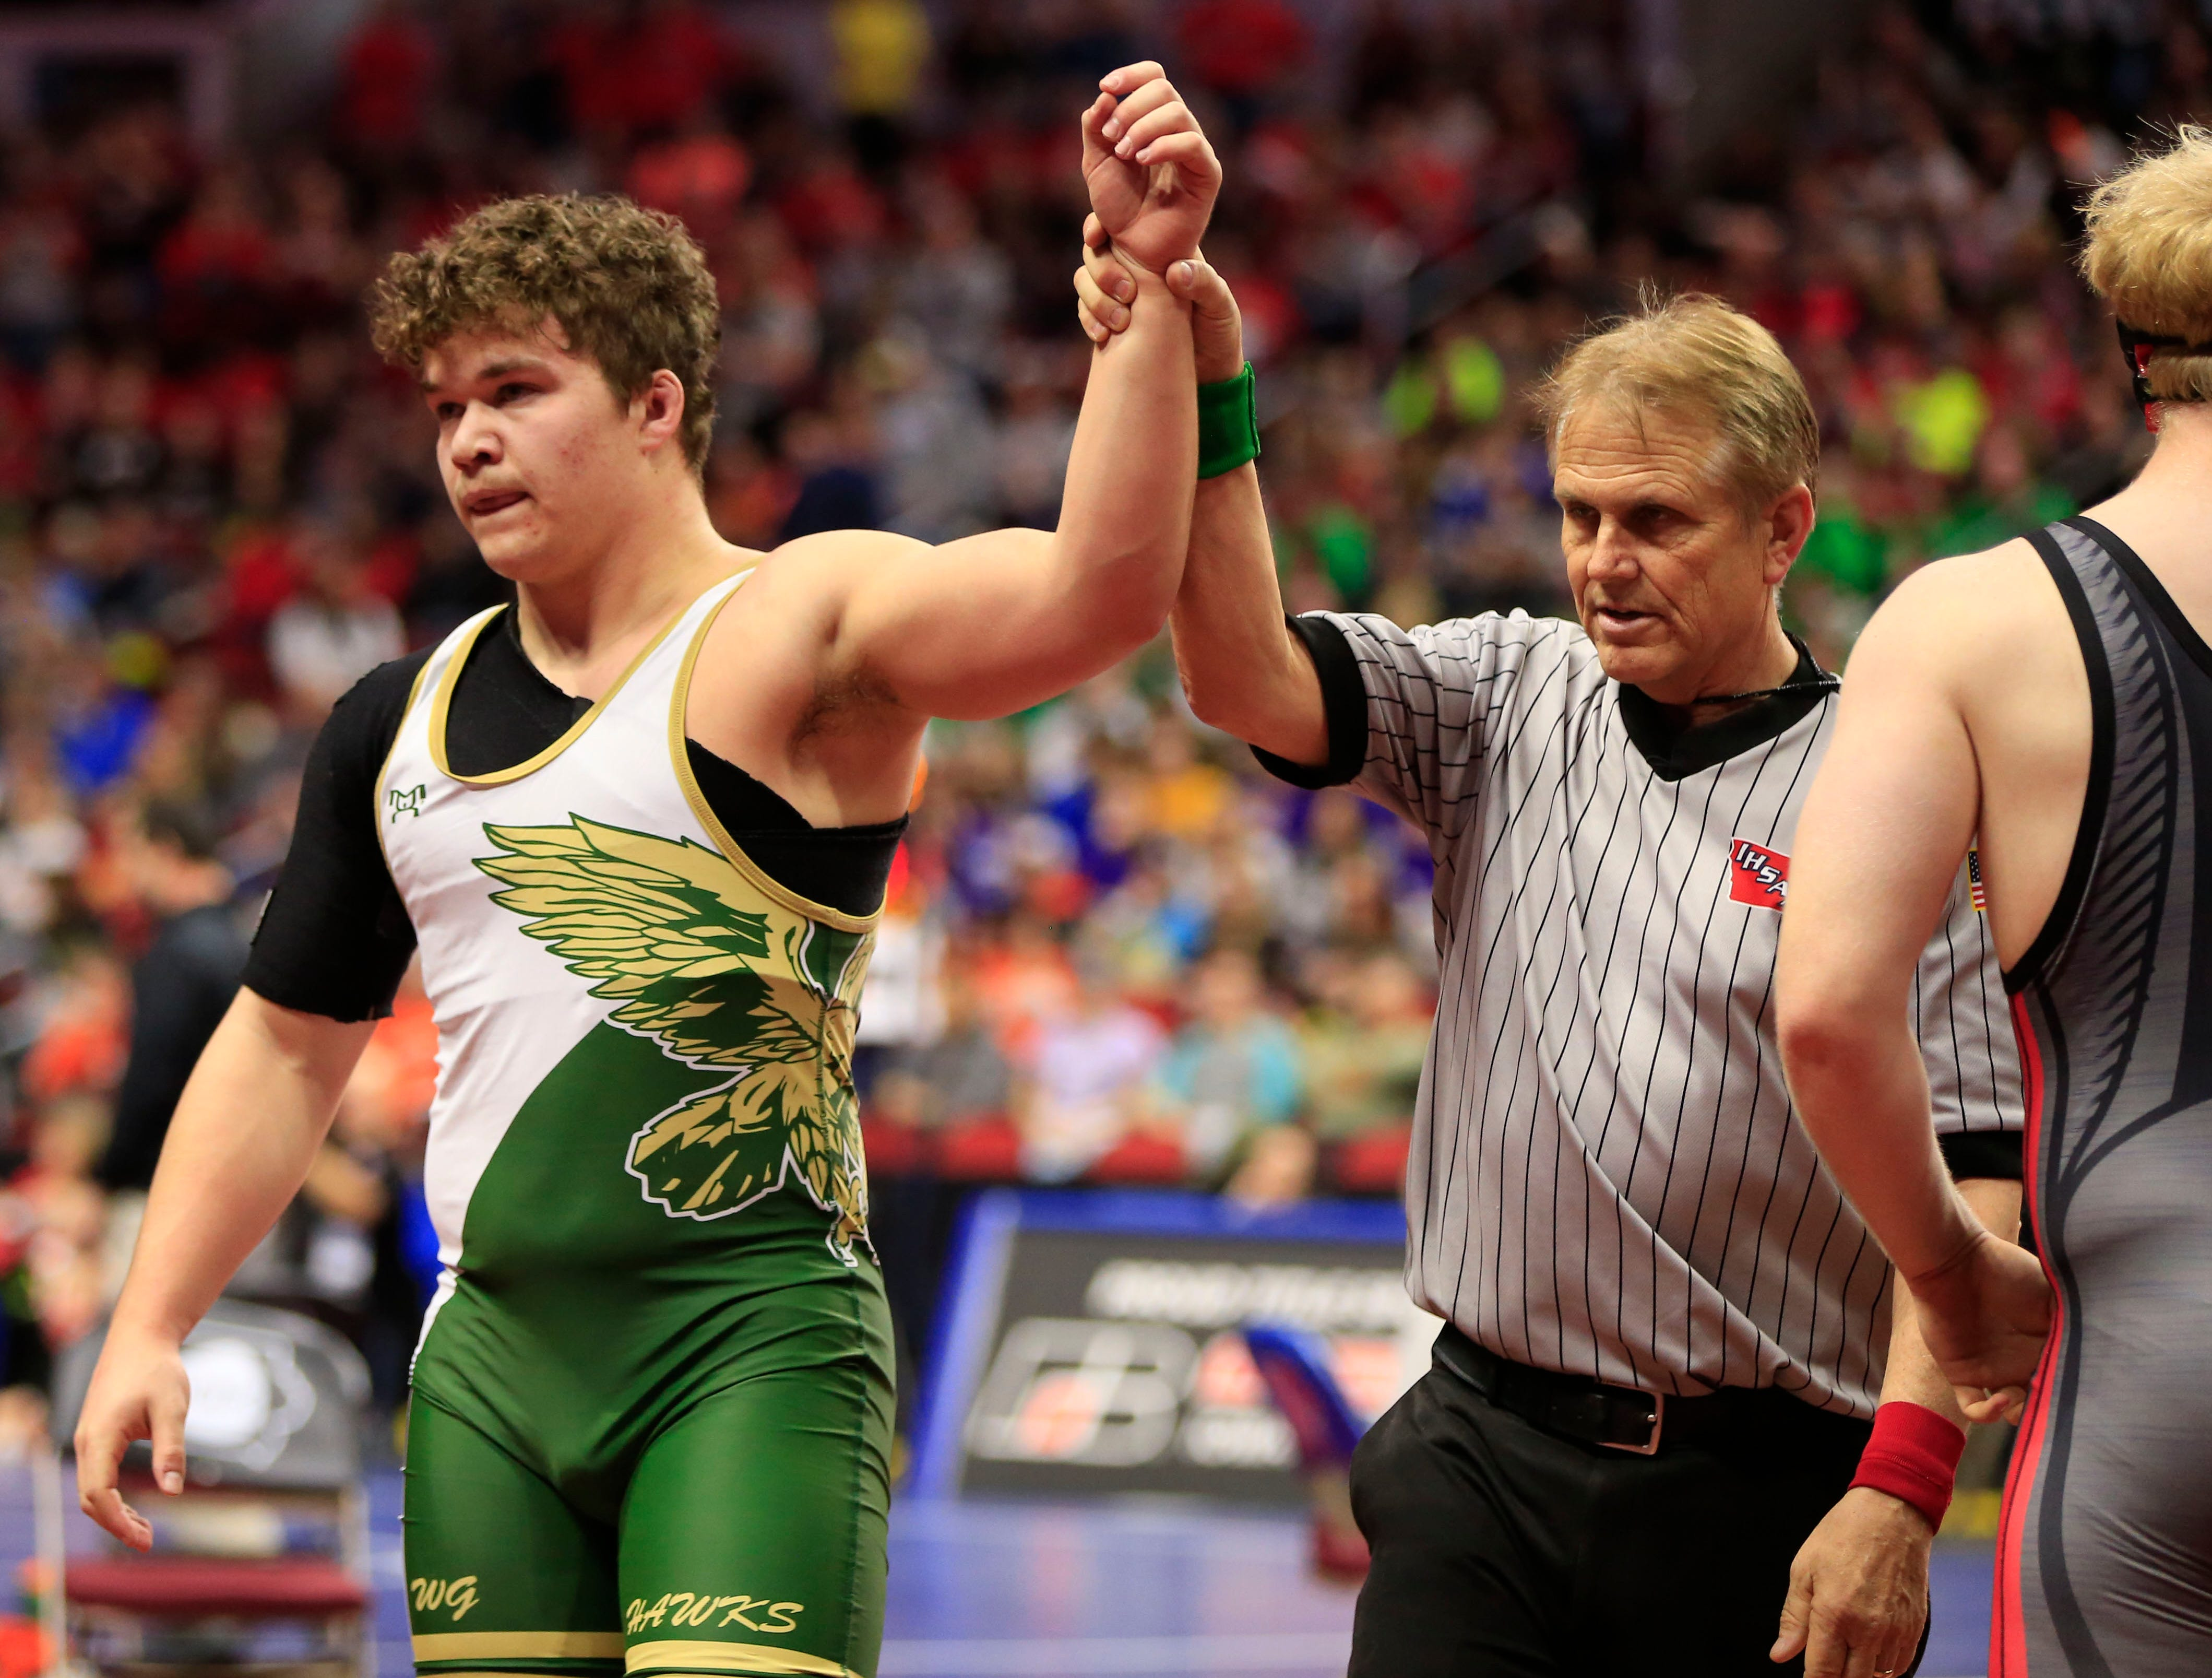 Cody Fisher of Woodward Granger defeats Wyatt Folkerts of Hampton-Dumontduring a 220 Lb 2A quarterfinal match at the state wrestling tournament Friday, Feb. 15, 2019.